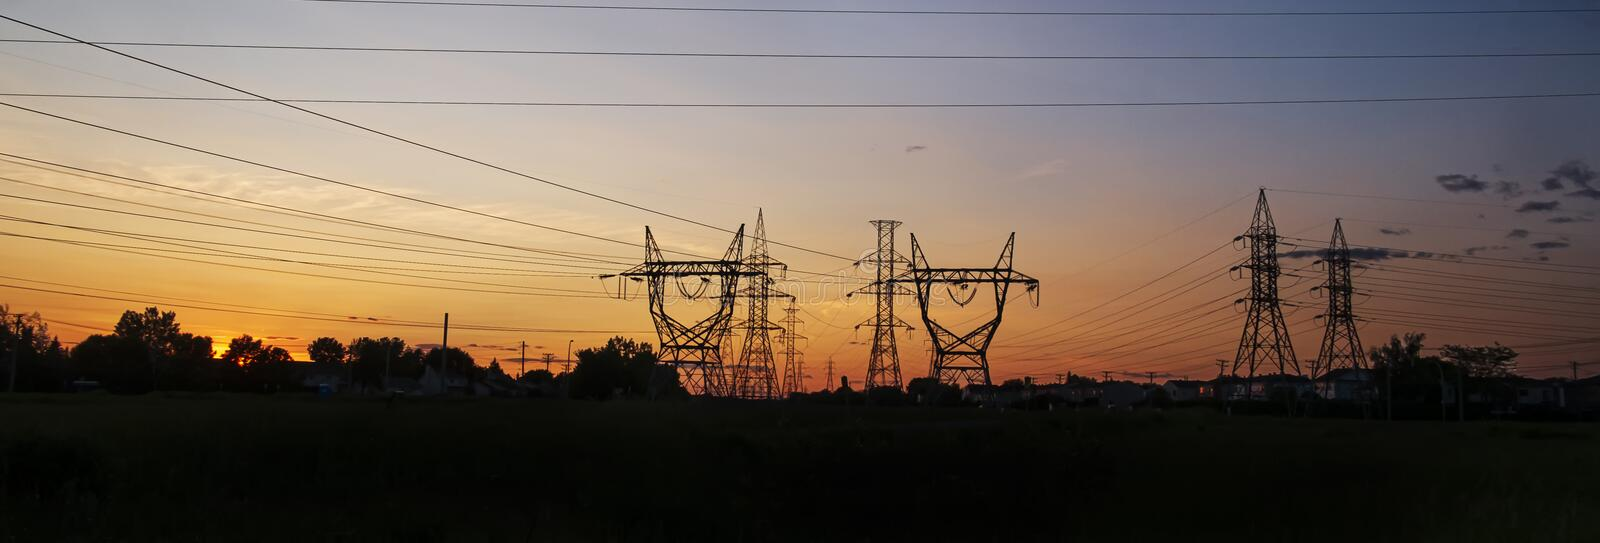 Electrical power towers at sunset. A bunch of electrical transmission towers electricity pylons carrying high voltage lines in the city at sunset stock photo